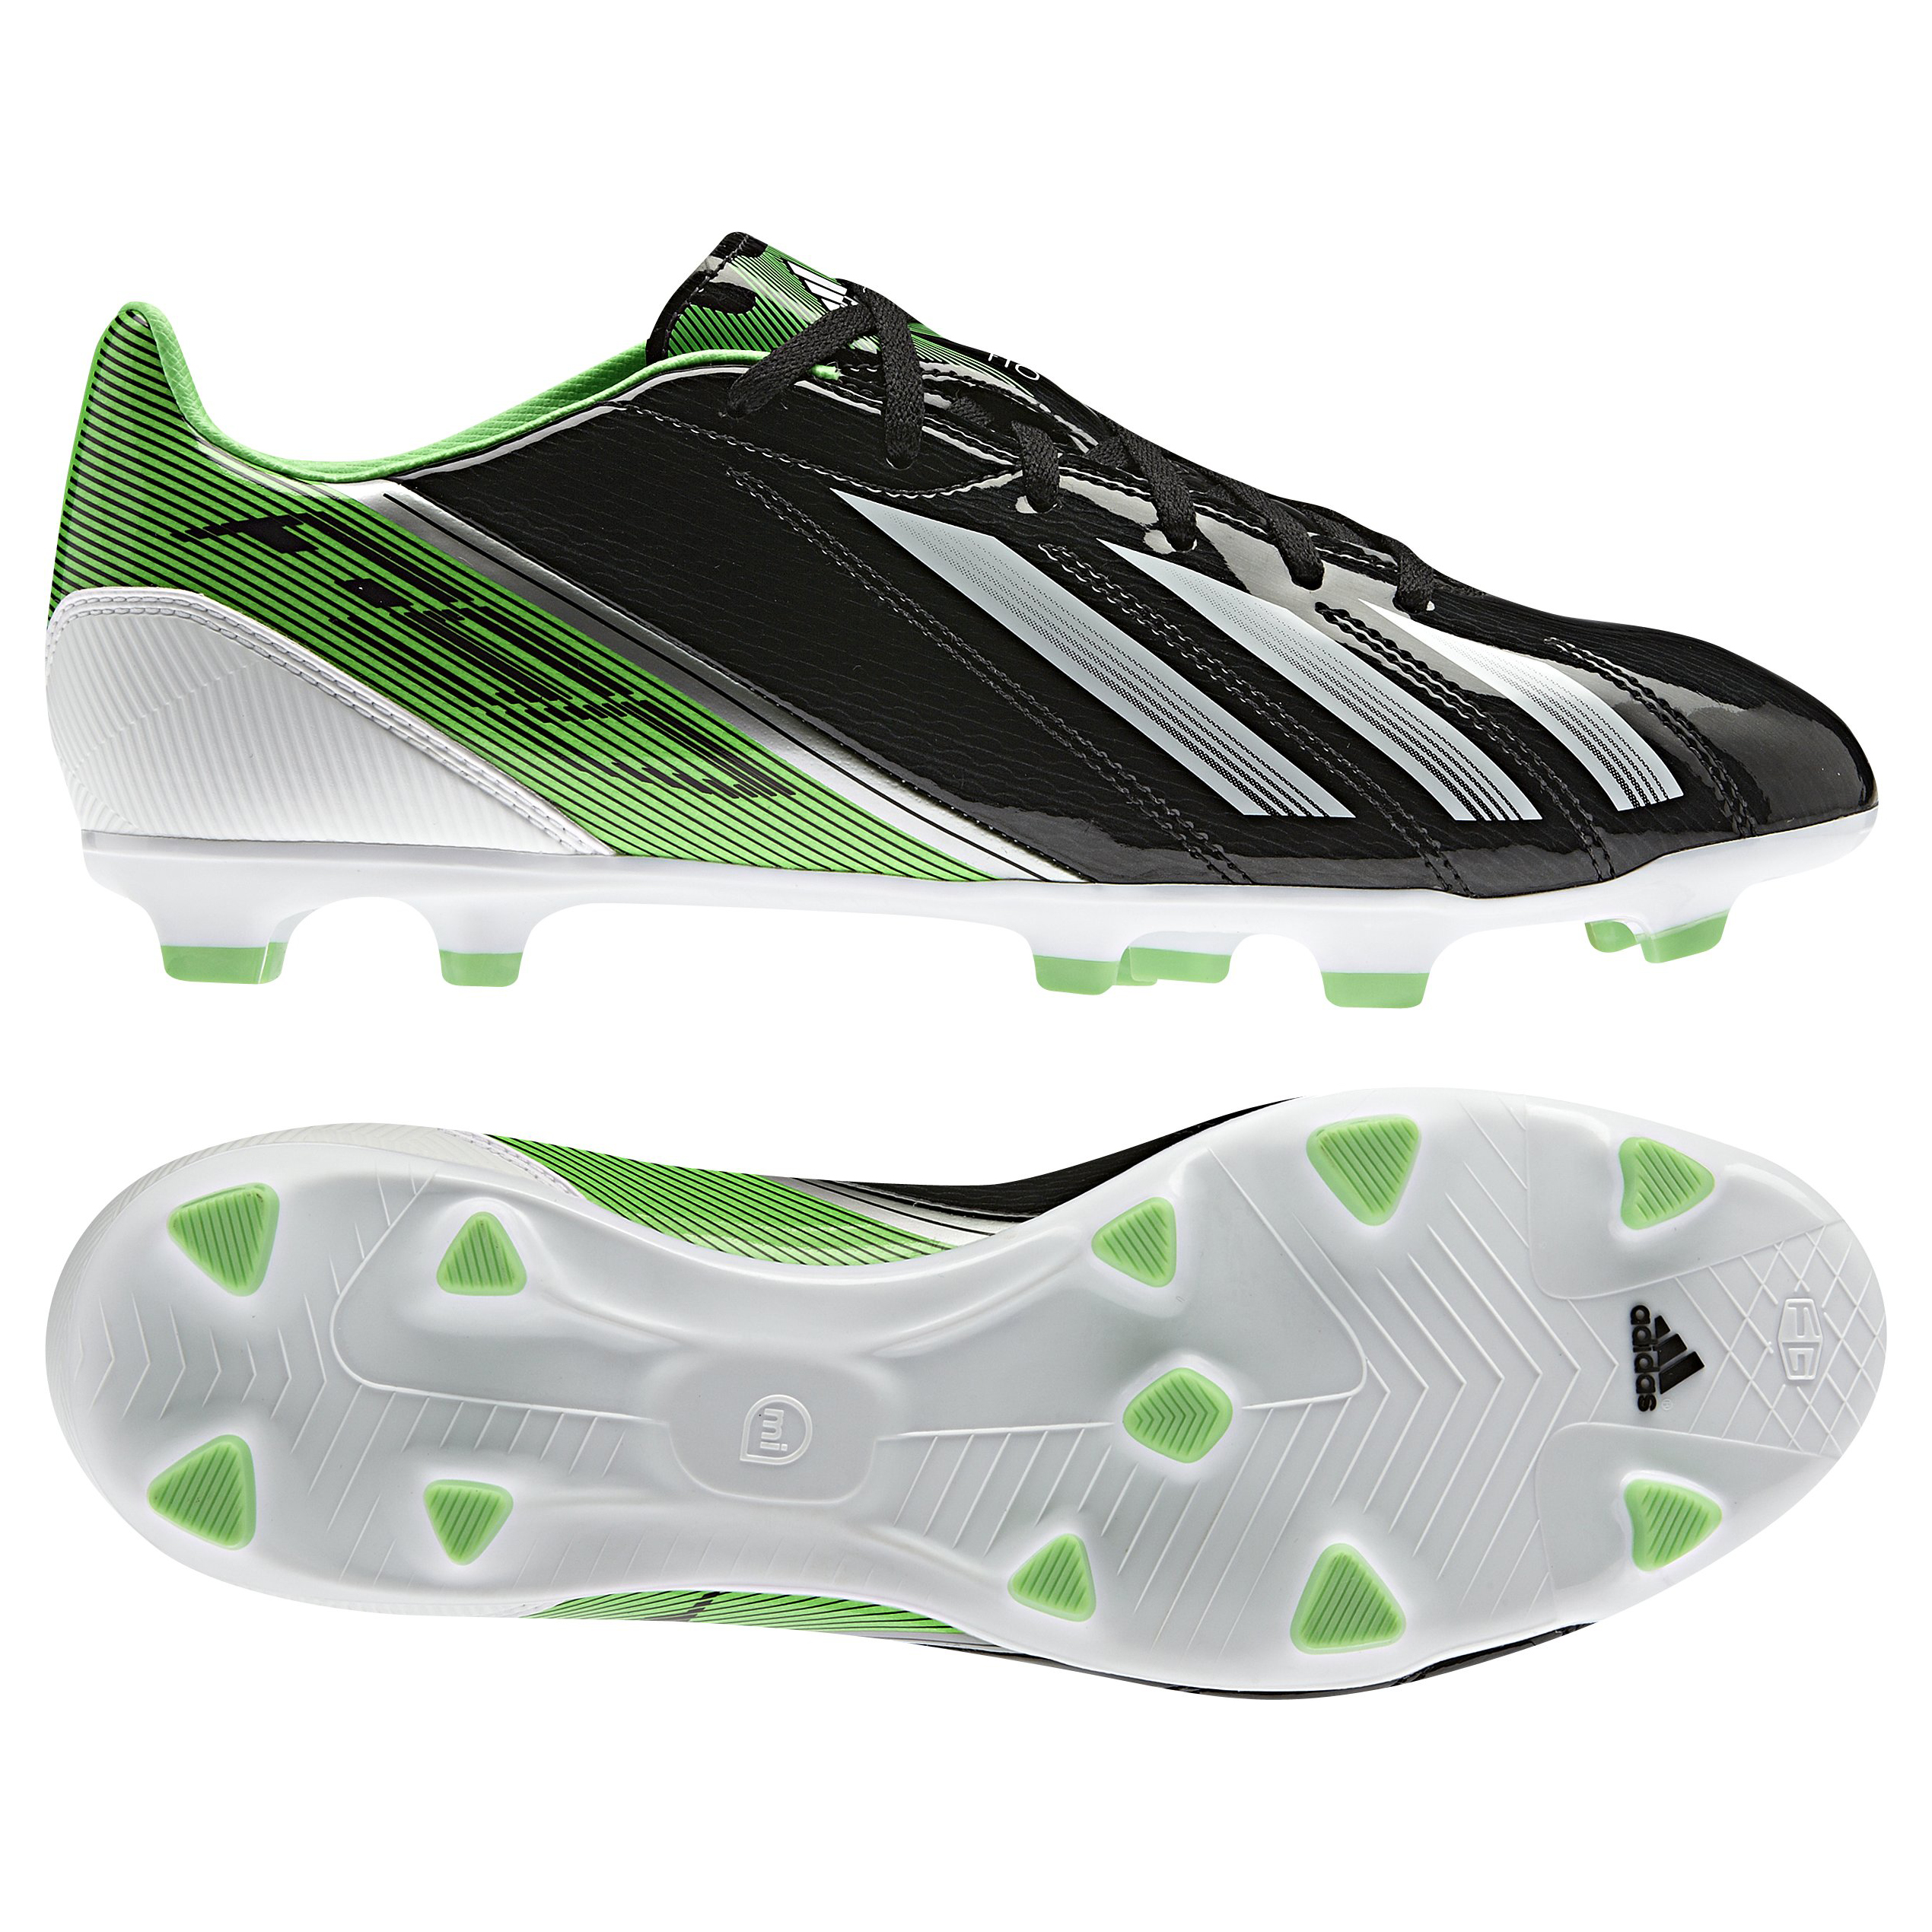 adidas Adizero F10 TRX Firm Ground Football Boots - Black/Running White/Green Zest